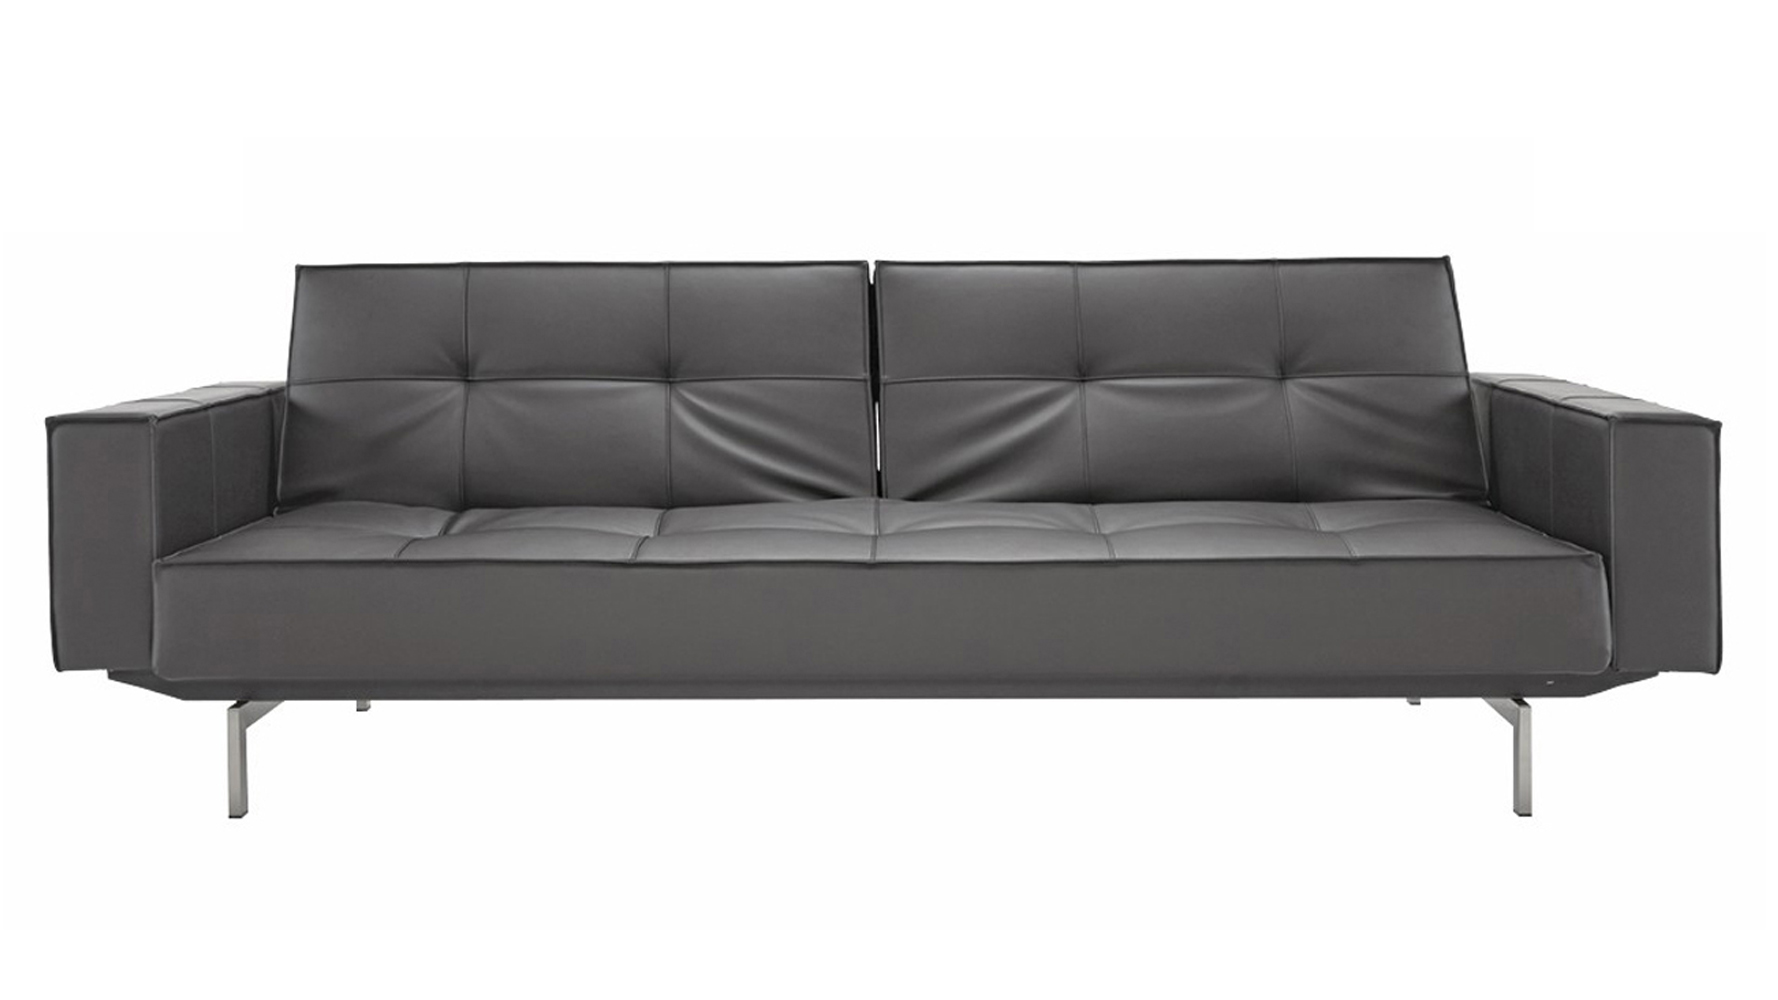 sofa steel modern white leather sectional with built in light brawn stainless arms black zuri furniture